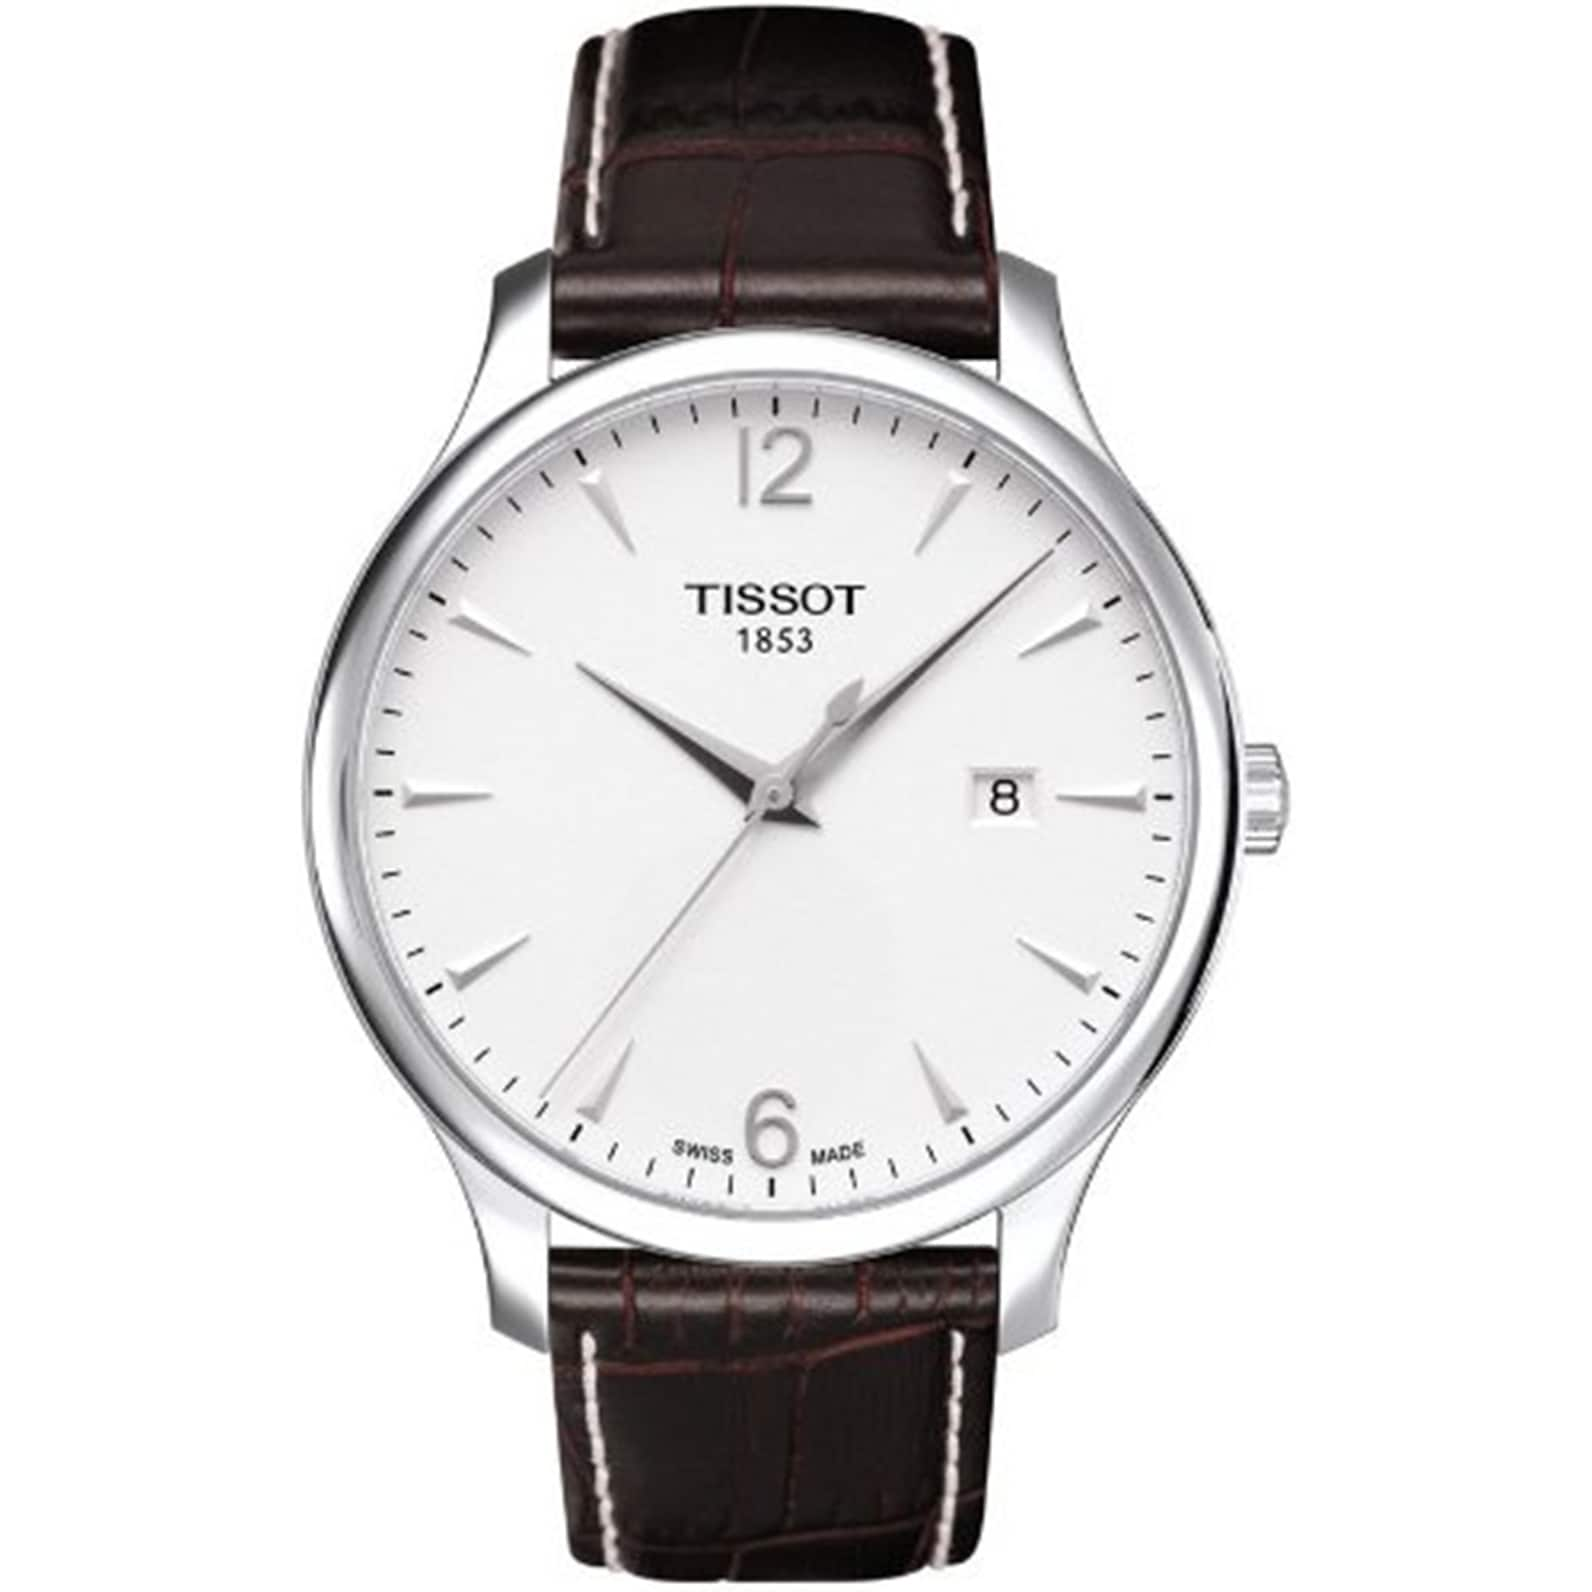 Tissot Men's Brown Leather Swiss Quartz Watch (T063.610.1...